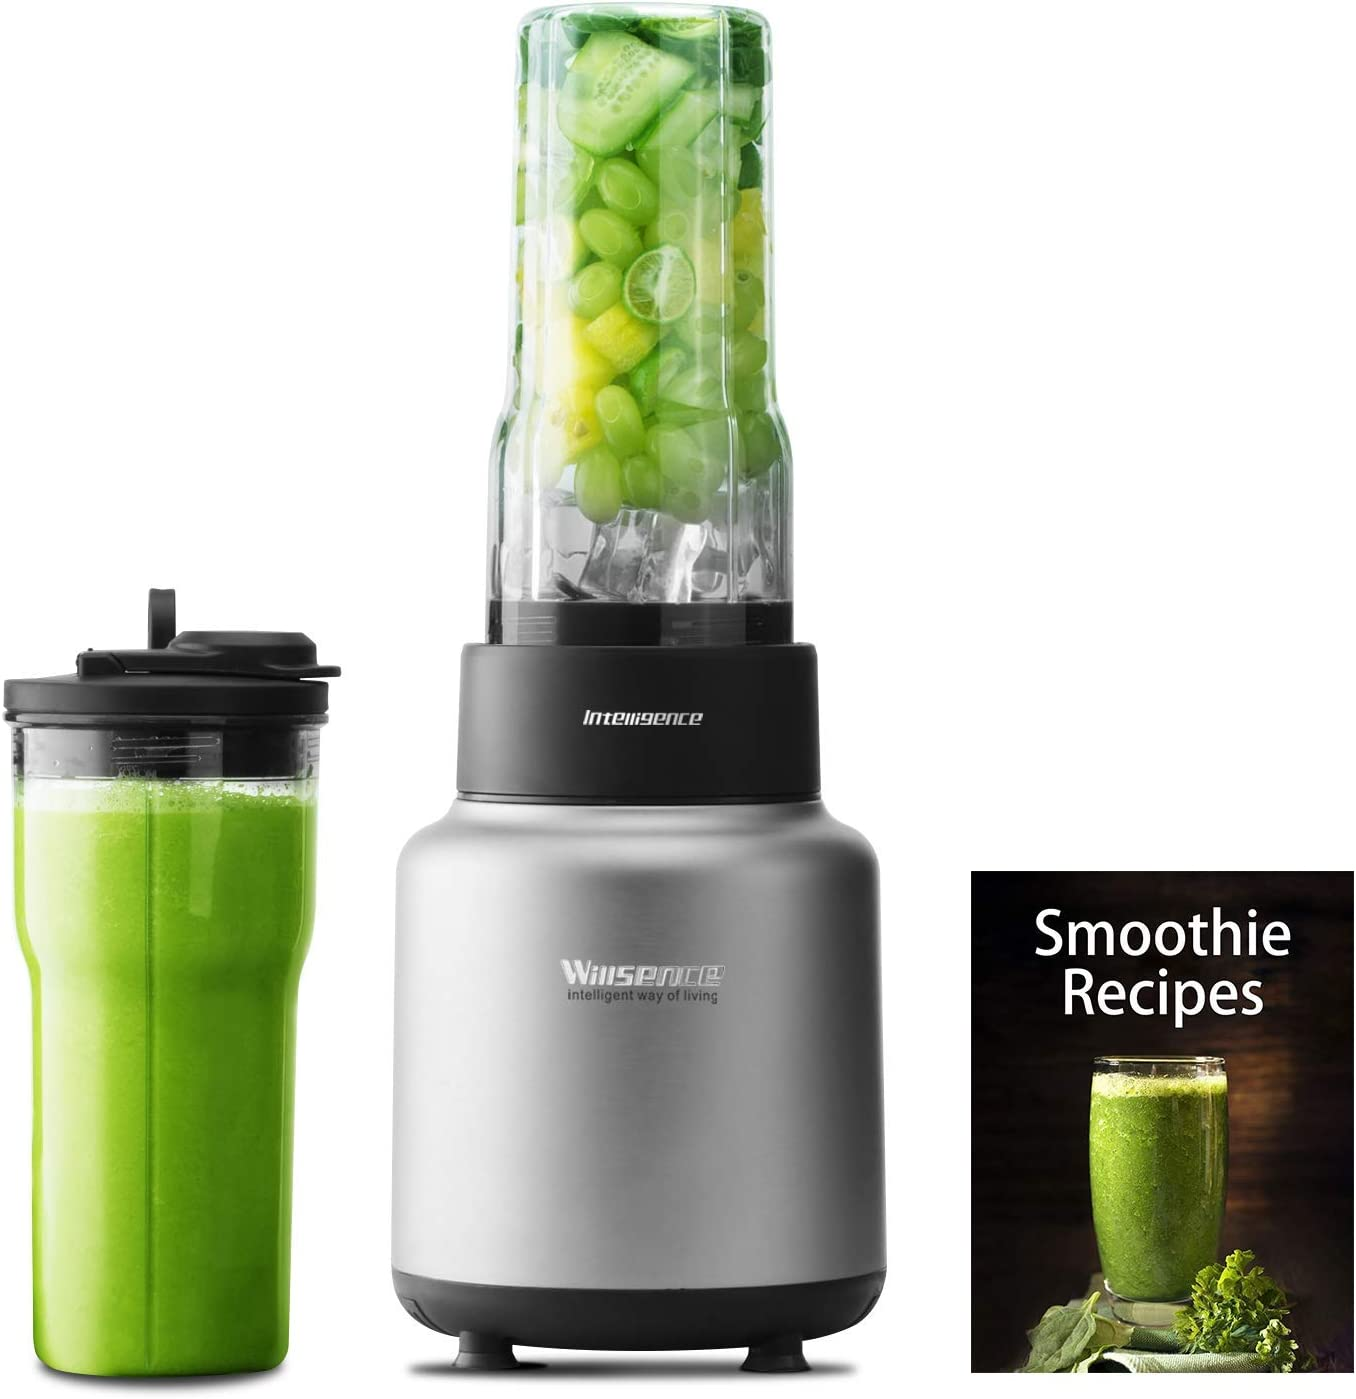 Willsence Blender 30000 RPM/Min Smoothie Blender 1500W High Speed, NUTRI-IQ Intelligent Identification of Food Hardness System, 6 Different Edges Stainless Steel Blade, BPA-Free 2 x 24 OZ Tritan Travel Cups, Recipe Book included